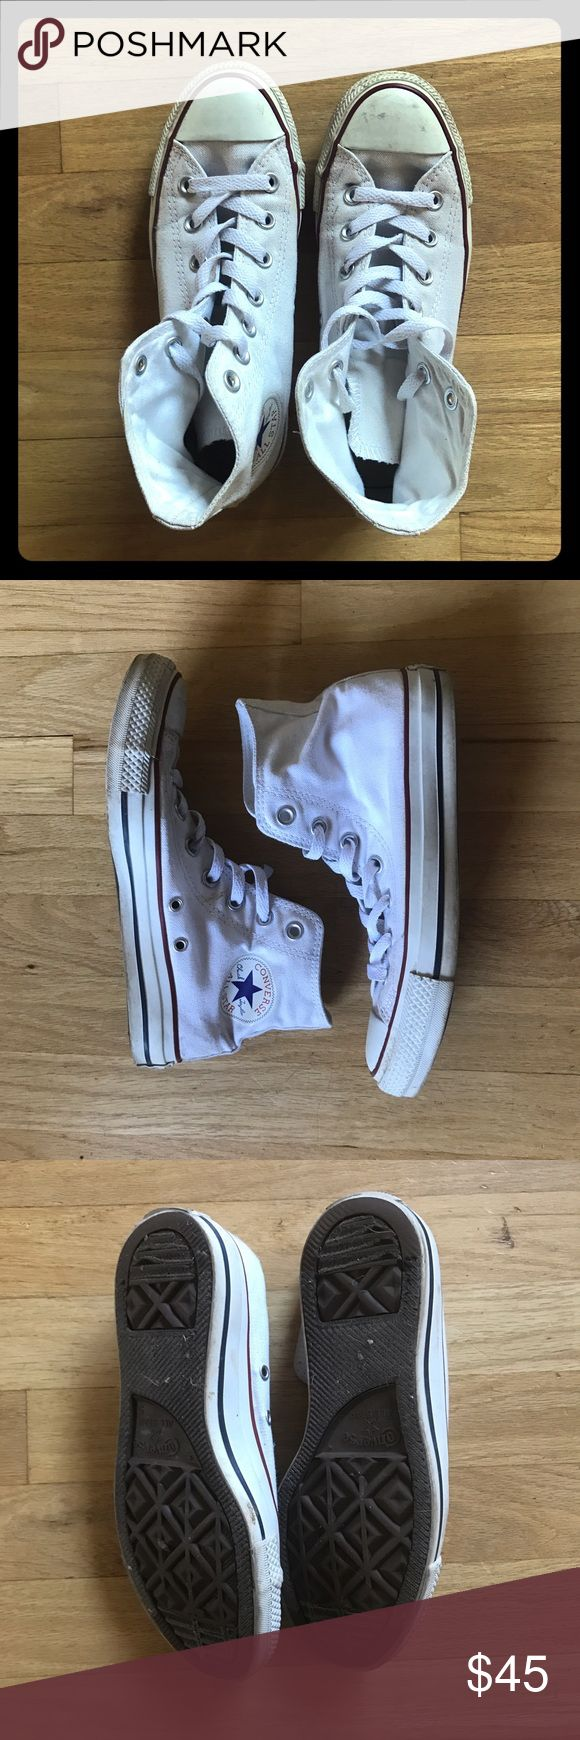 Converse Chuck Taylor high top shoes EUC only worn about 10 times. Converse Chuck Taylor white high tops. Women's 7, Men's 5. Run a little big like all Converse. I just prefer the low top version. Converse Shoes Sneakers